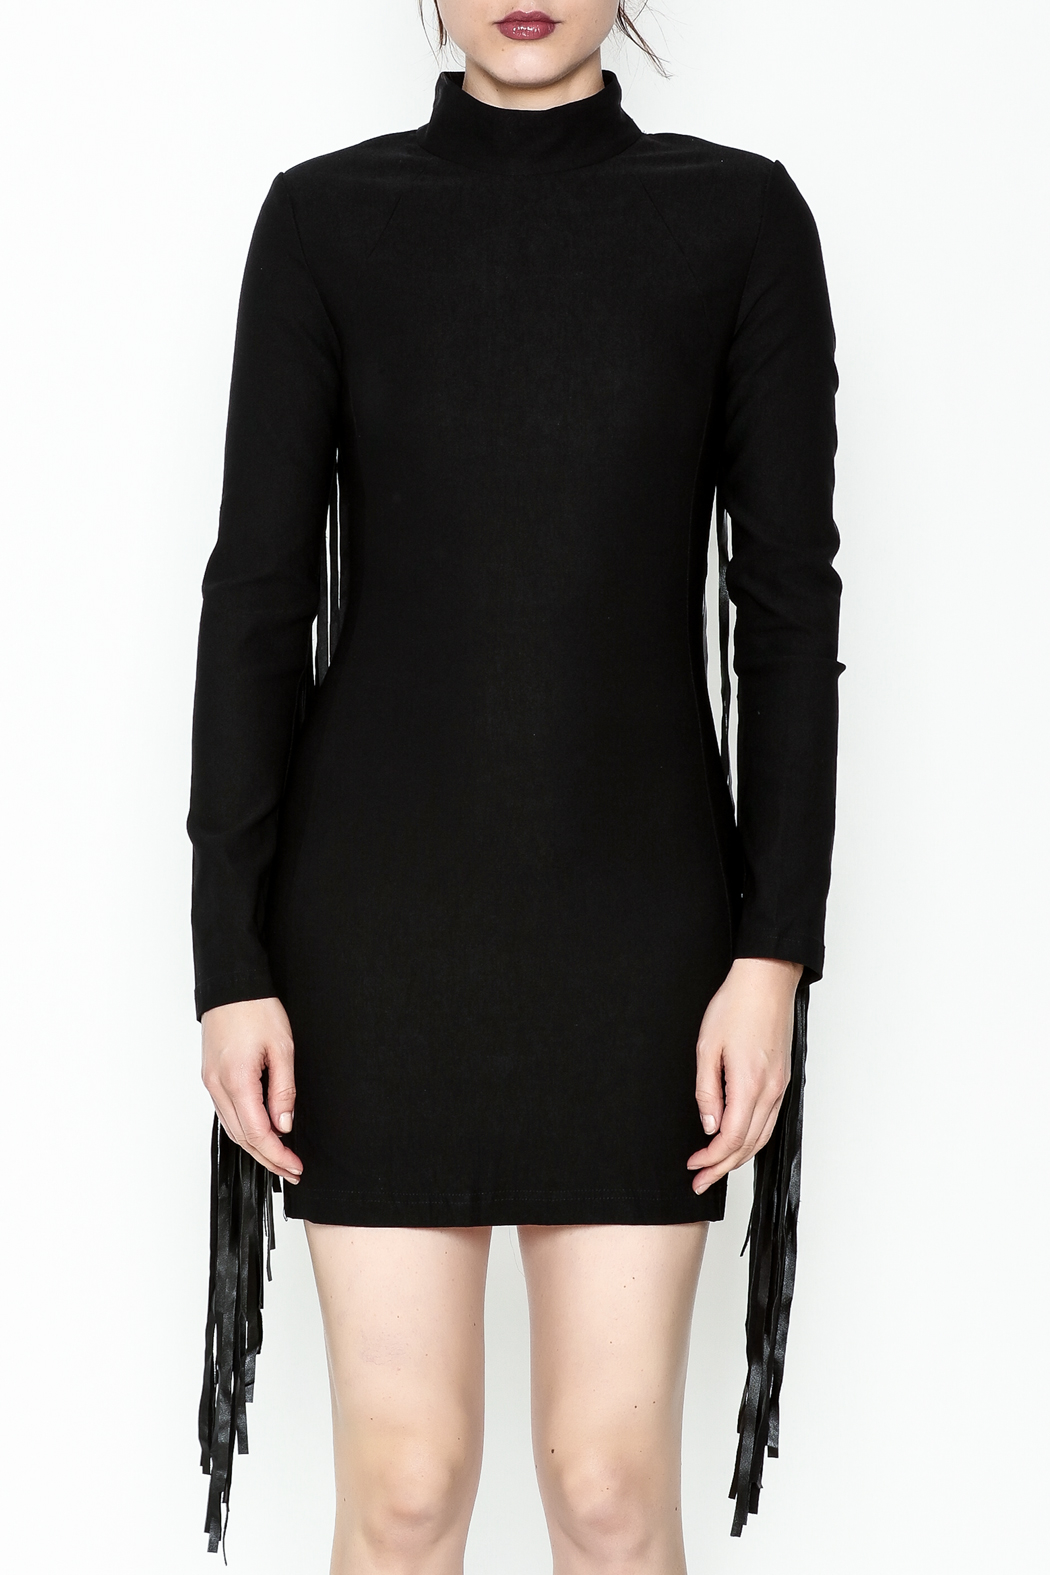 LIFTED Boutique Black Fringe Dress - Front Full Image